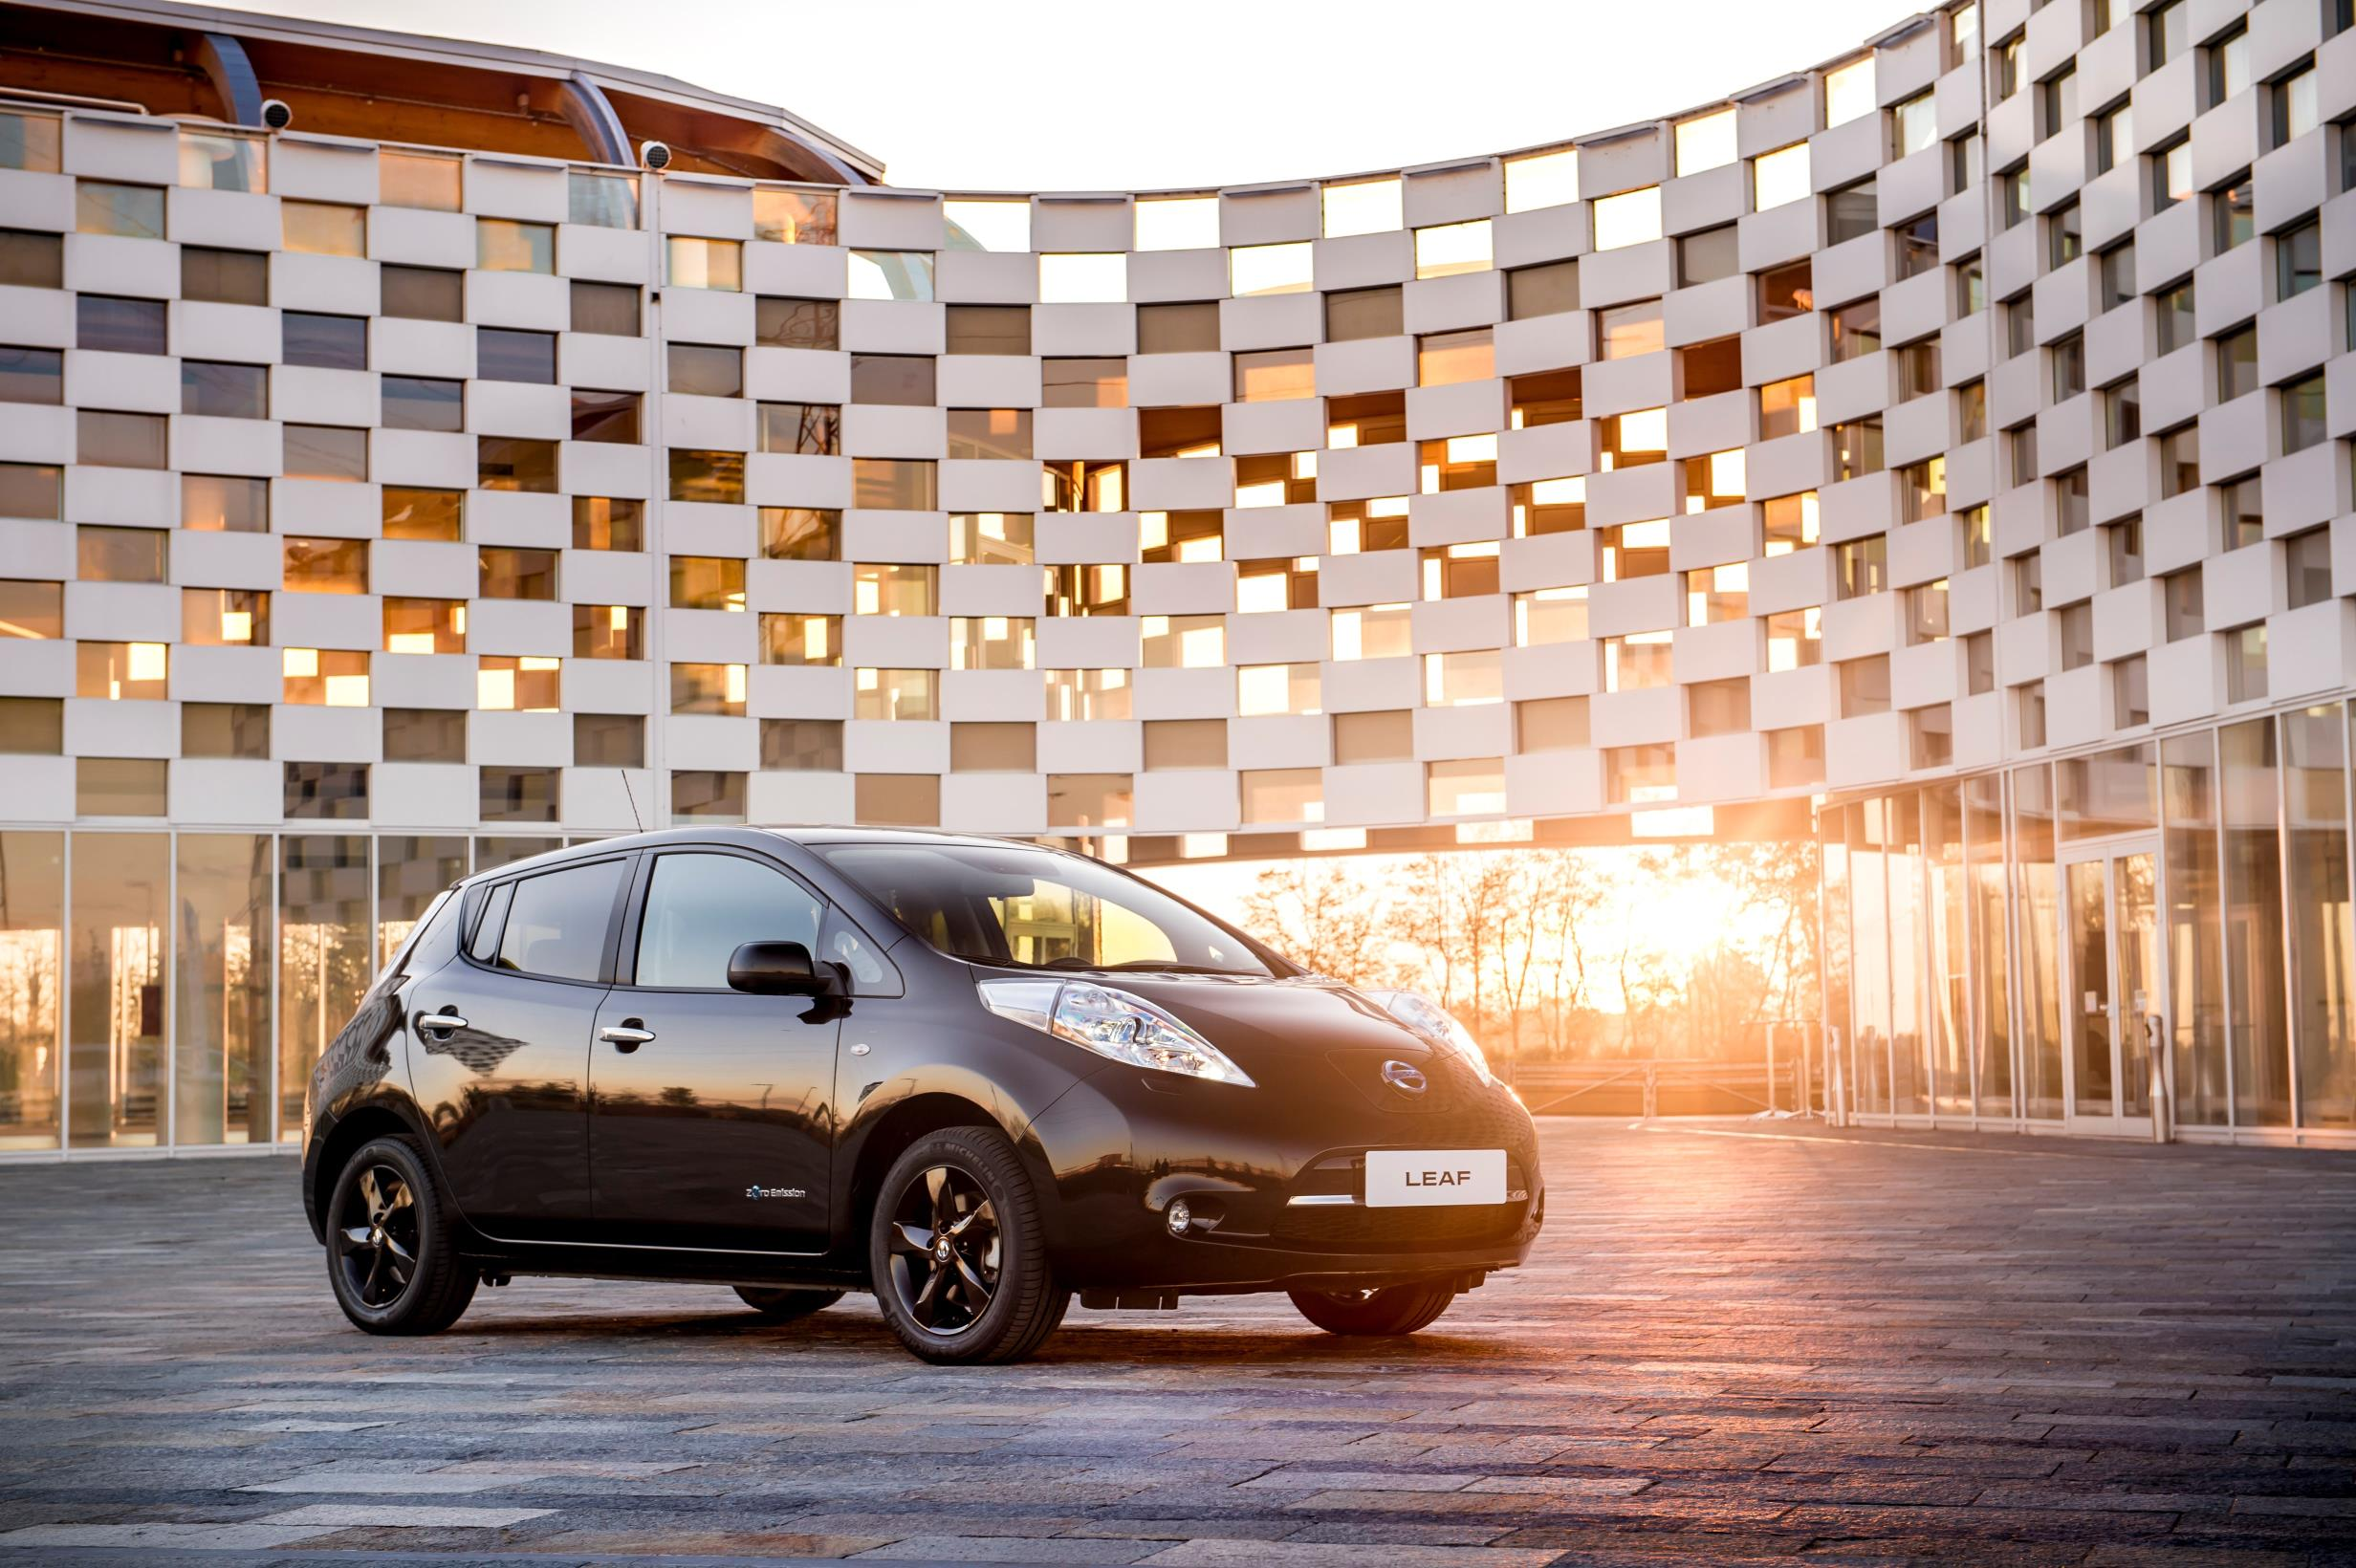 Nissan stylish new LEAF EV